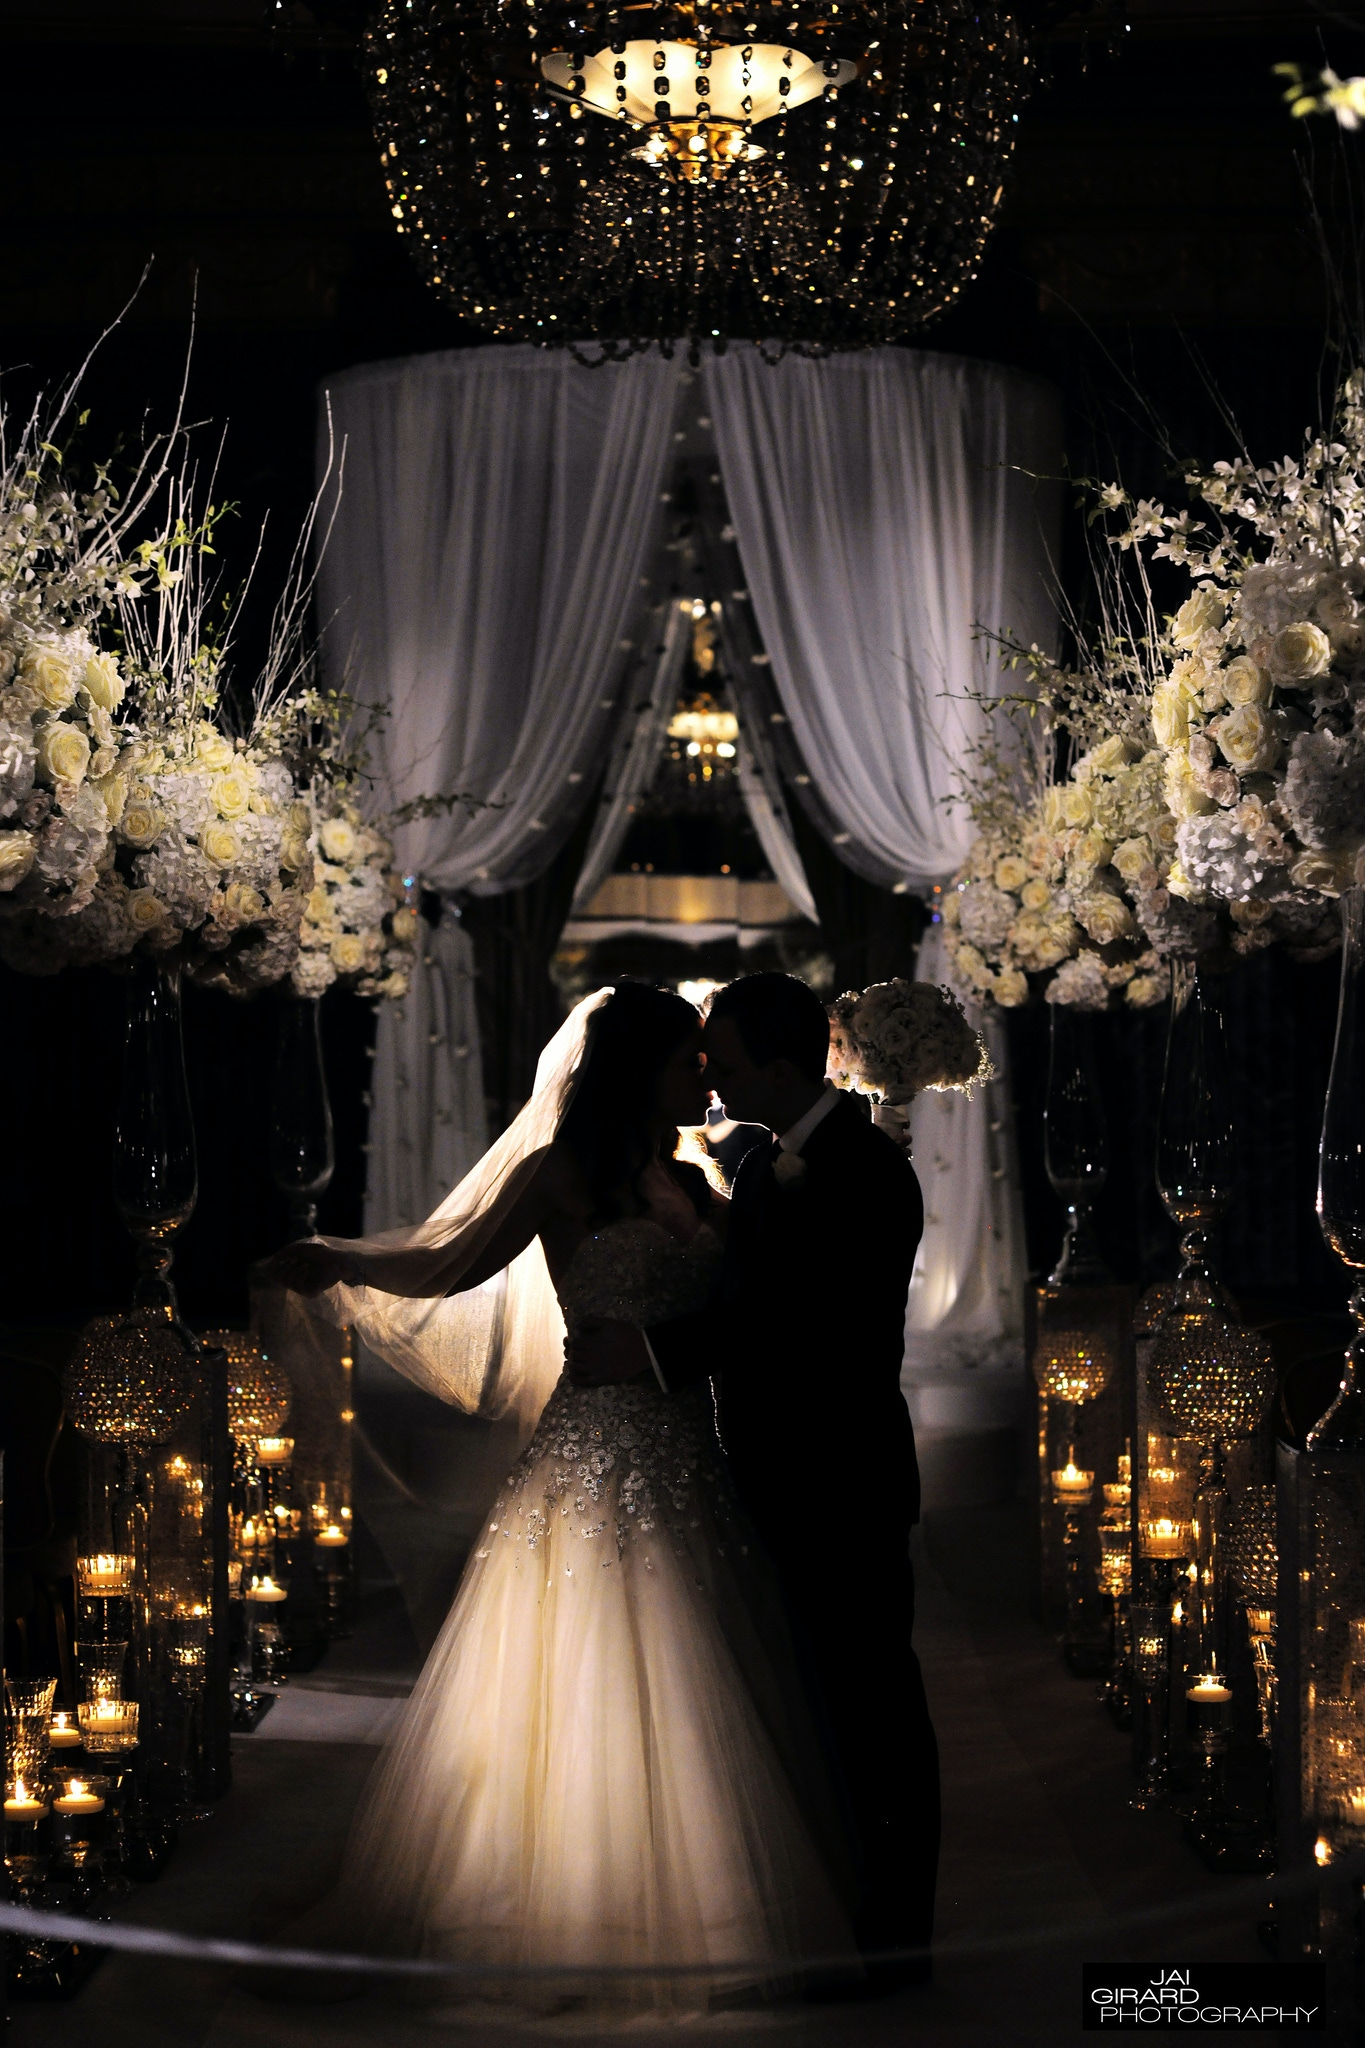 Wedding Aisle Ideas - Hotel InterContinental Chicago